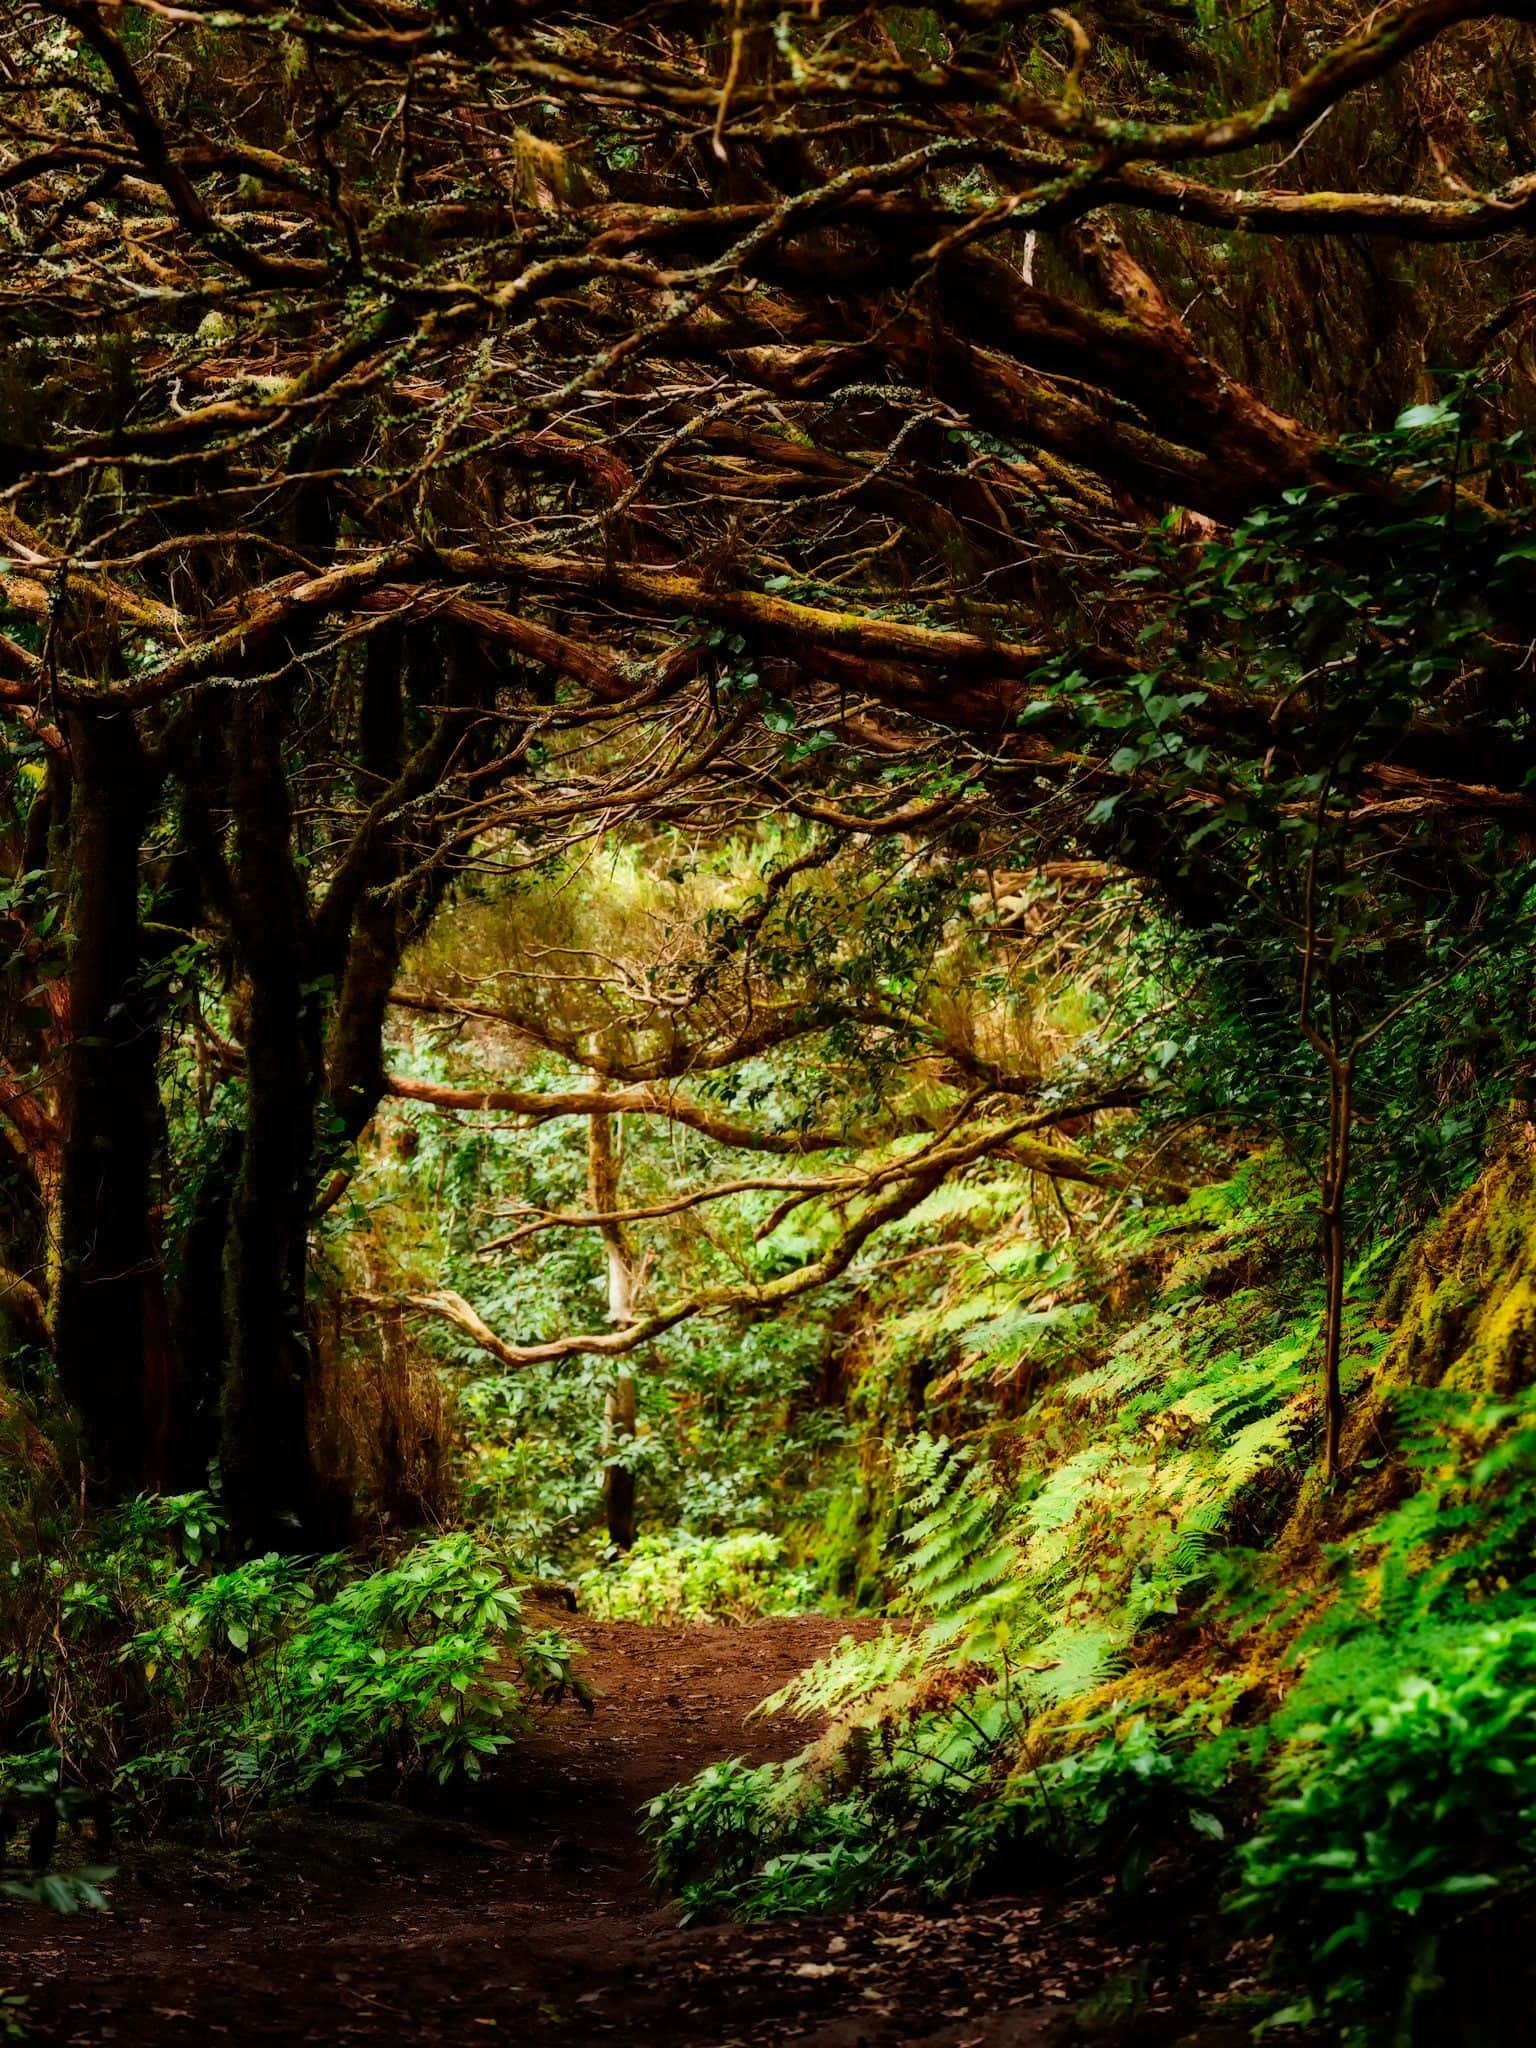 Path through Laurel Forest on Anaga Mountains in Tenerife, Spain